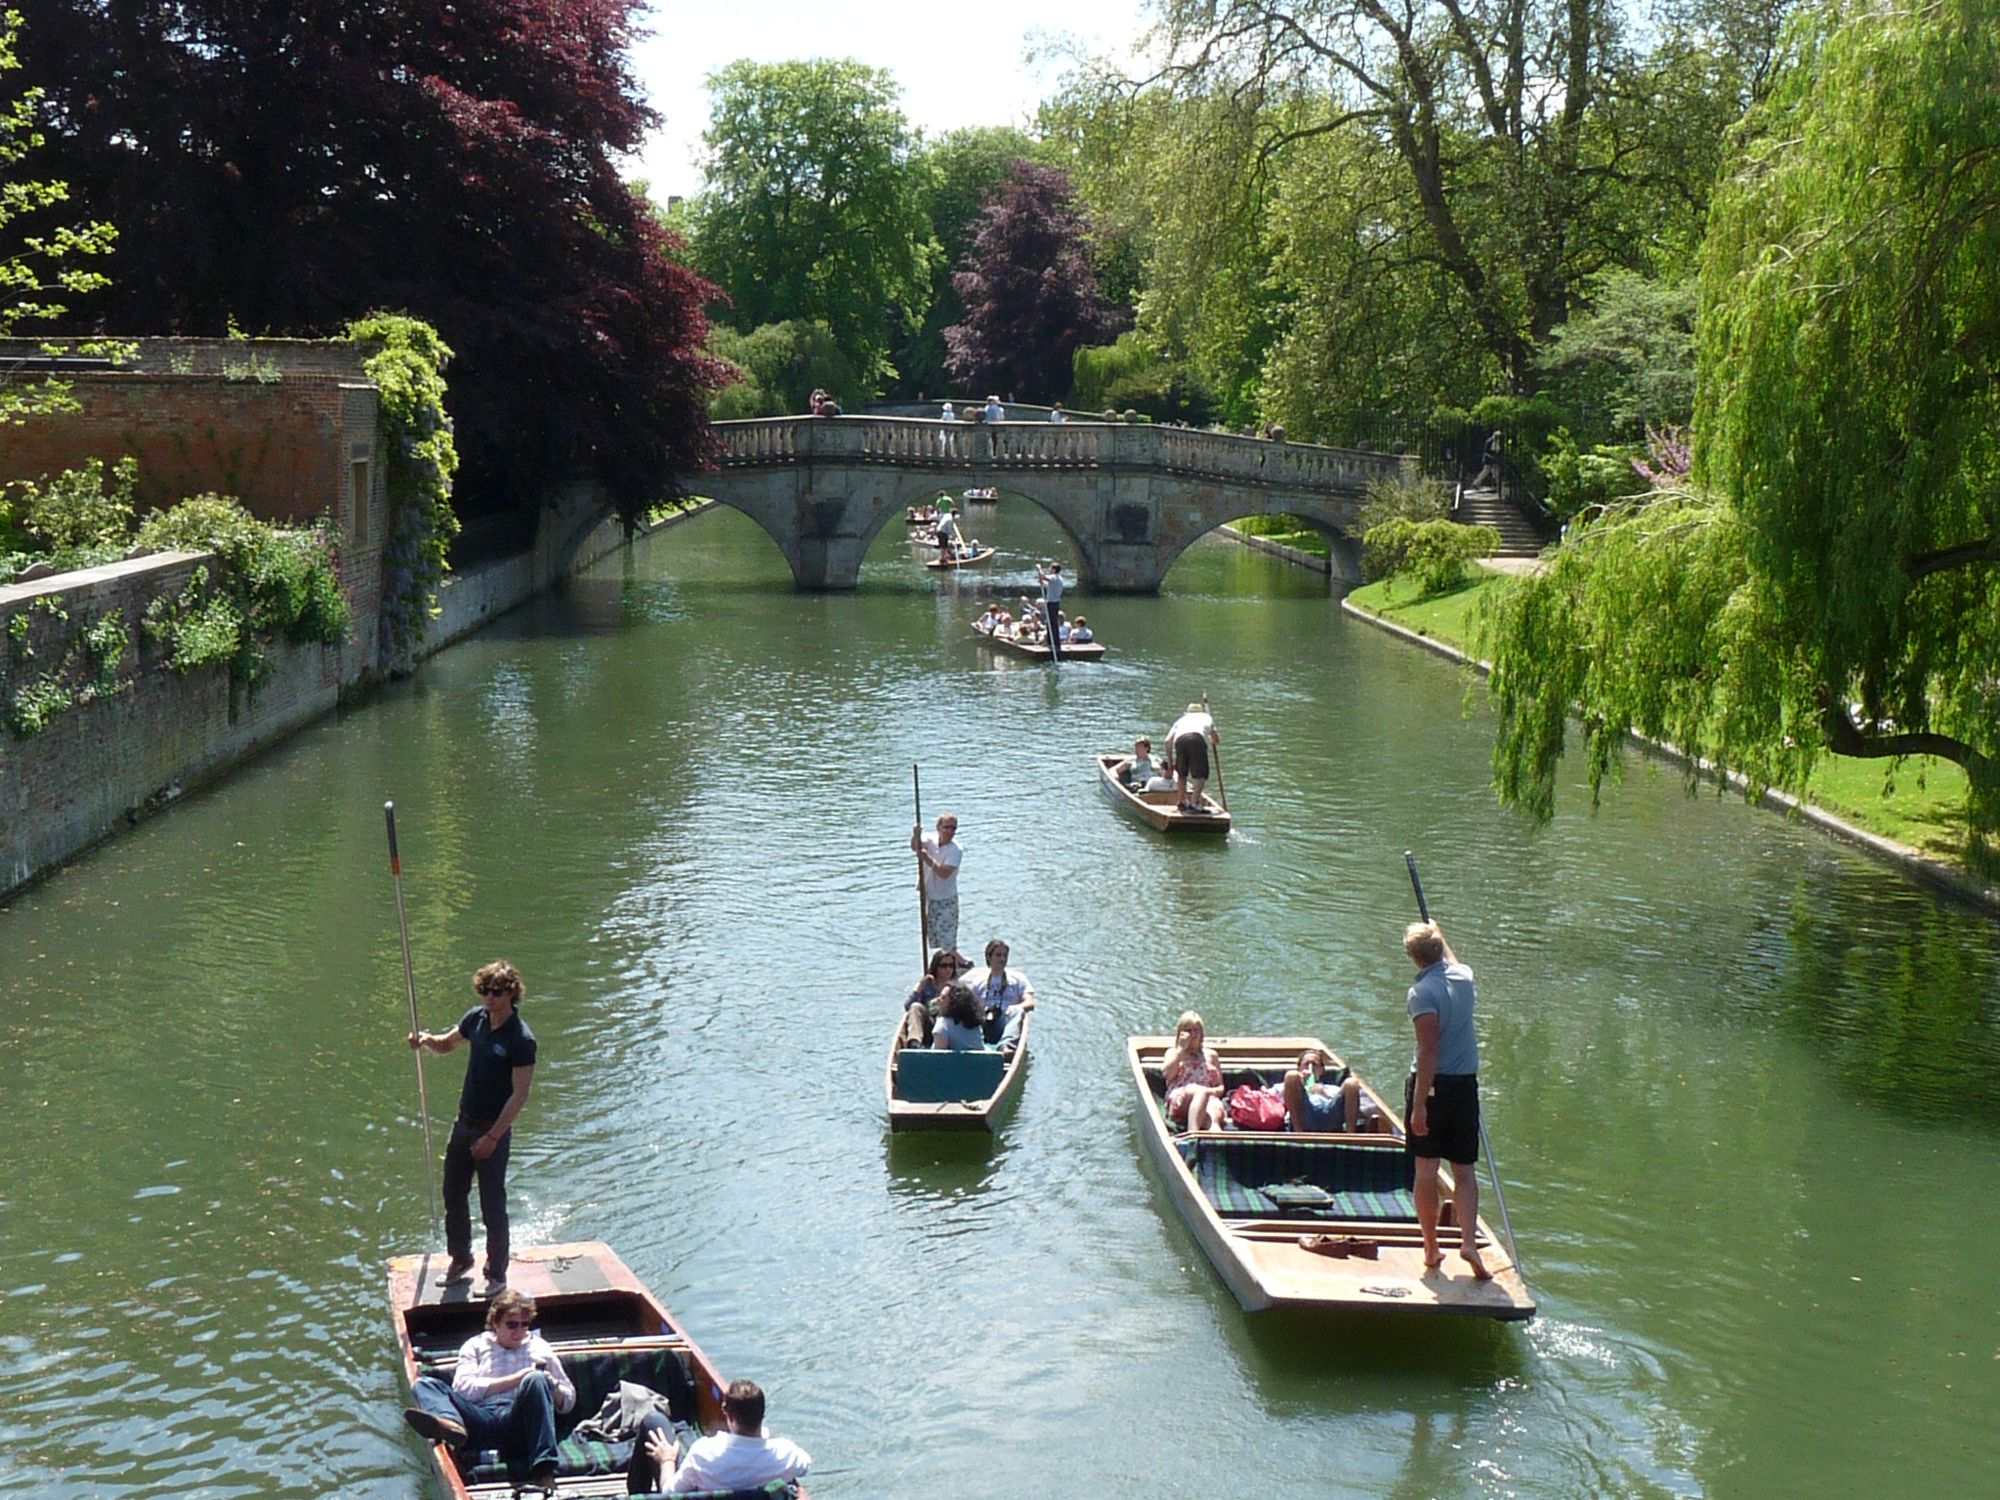 Hotels, B&Bs & Self-Catering in Cambridge